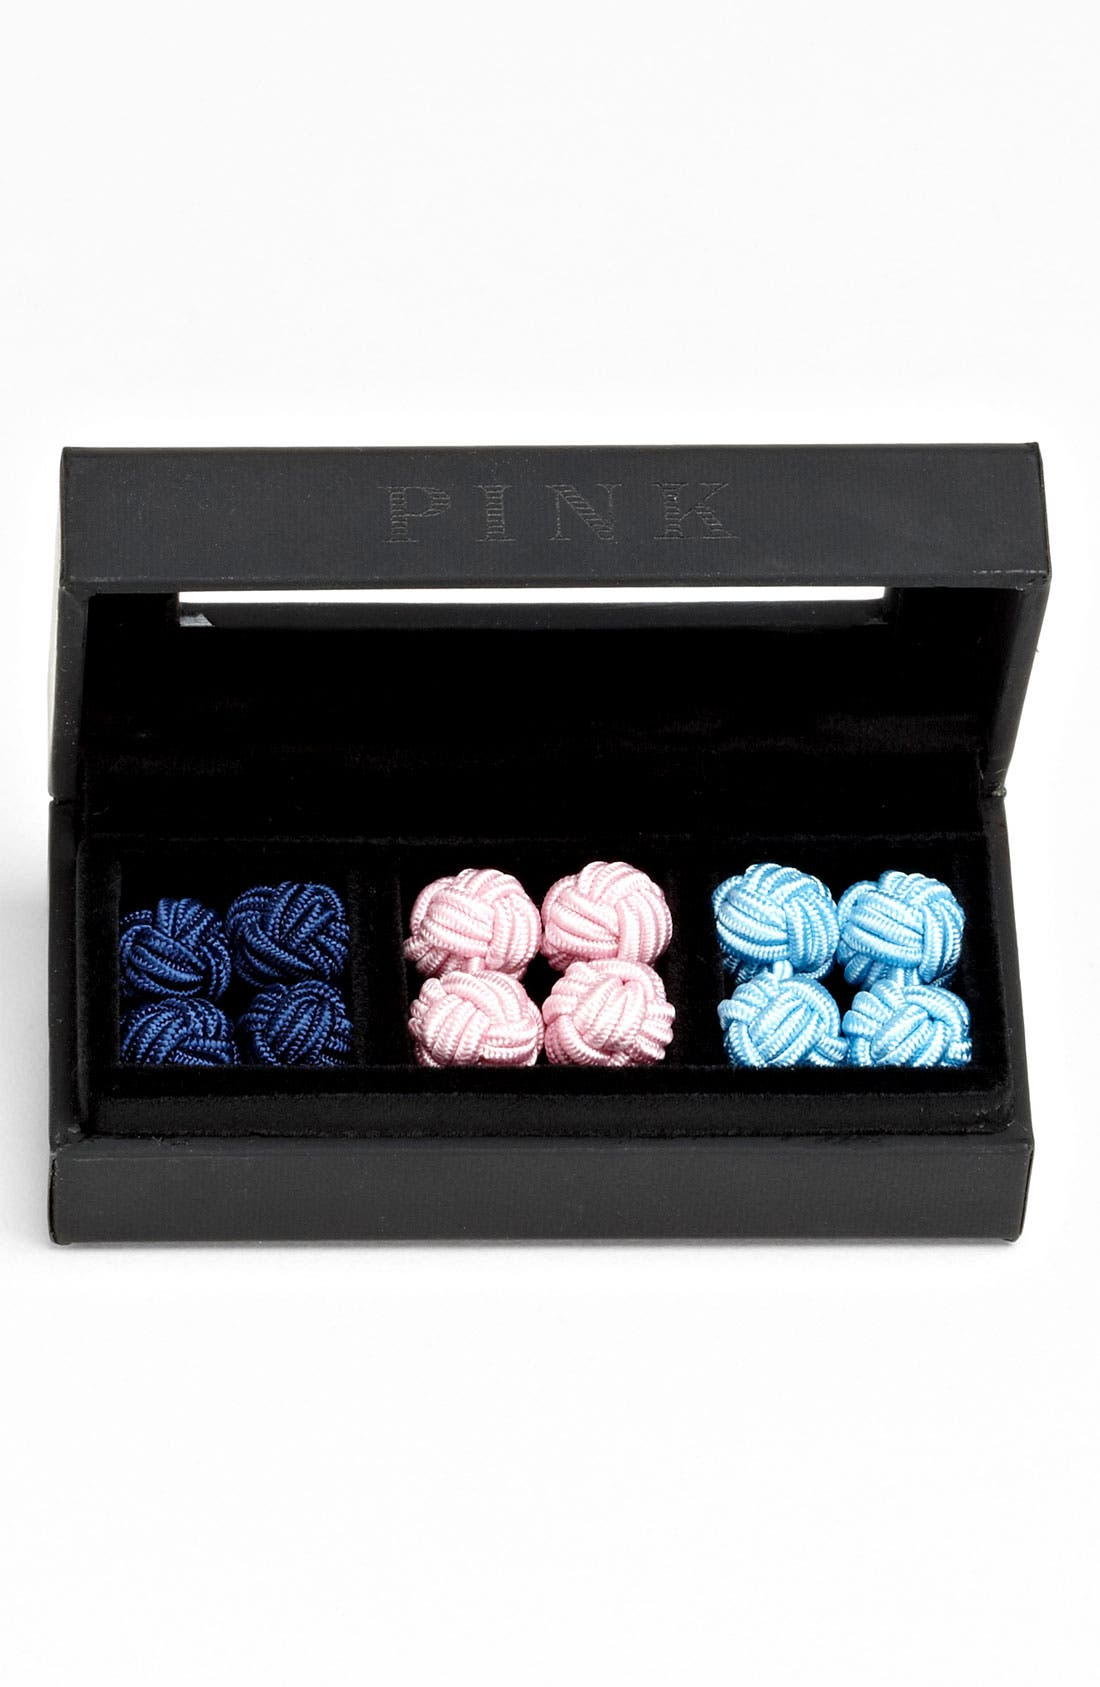 Alternate Image 1 Selected - Thomas Pink Knotted Cuff Links (Boxed Set of 3)